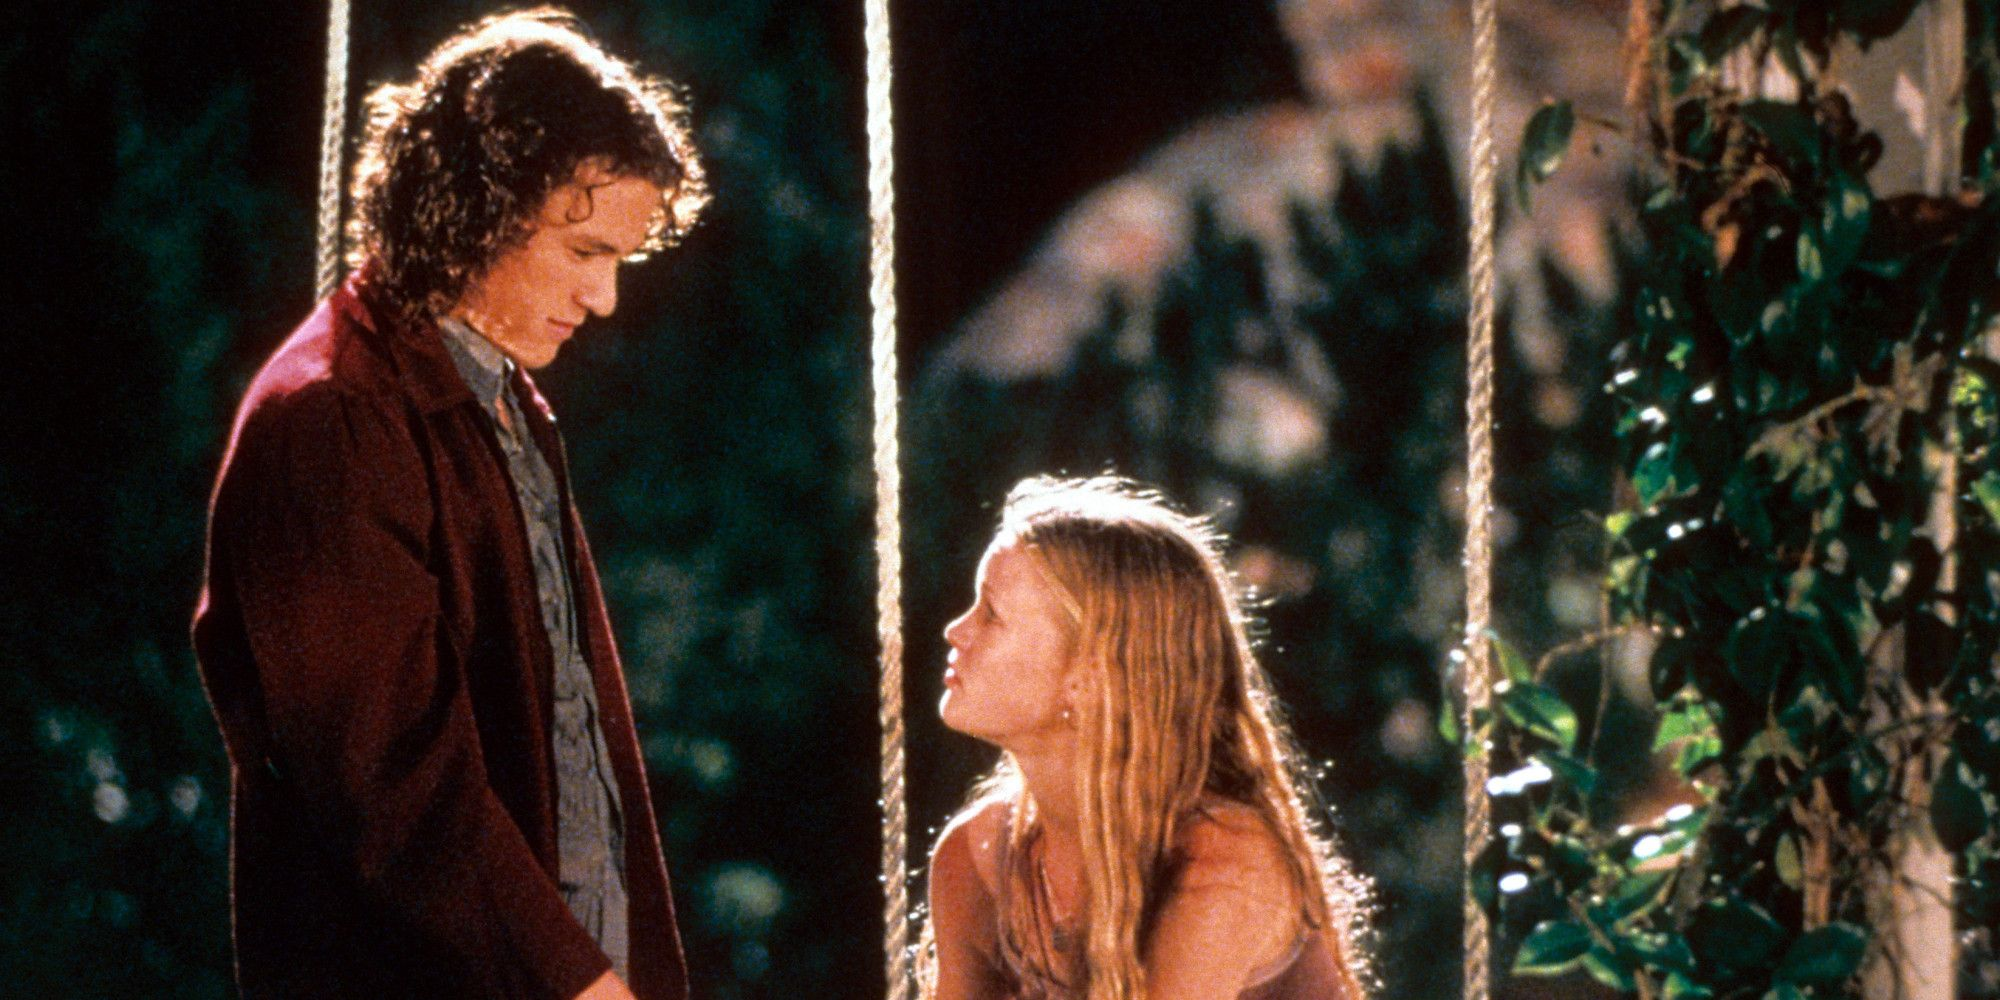 Pin On 10 Things I Hate About You